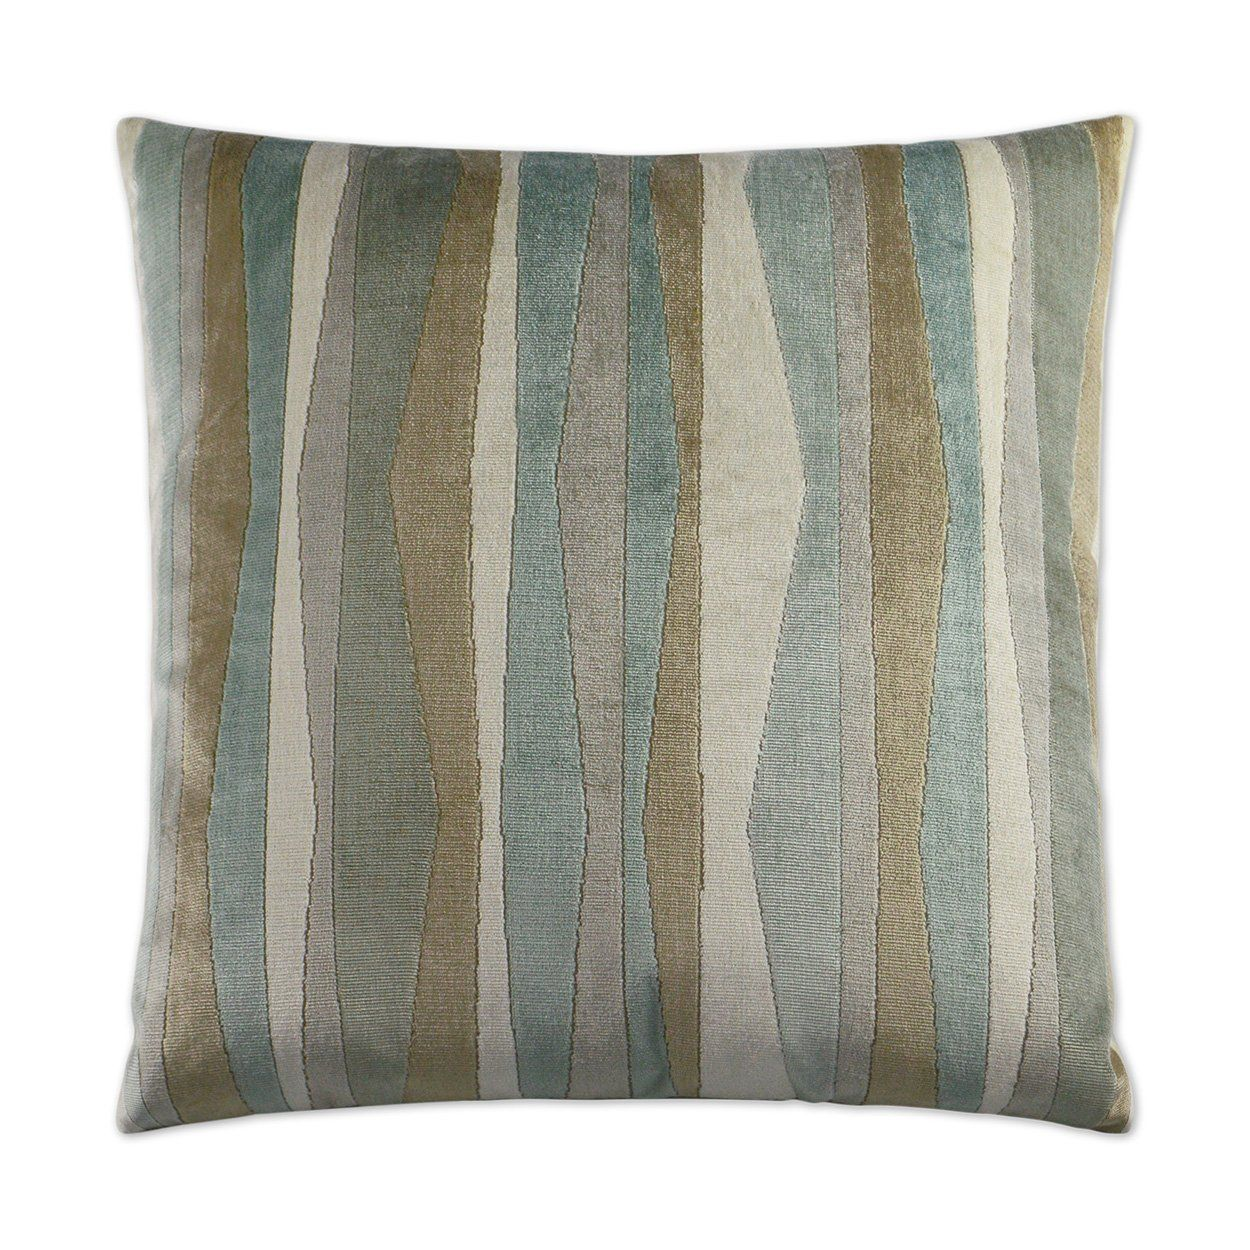 Photo of D.V. Kap Layers Pillow